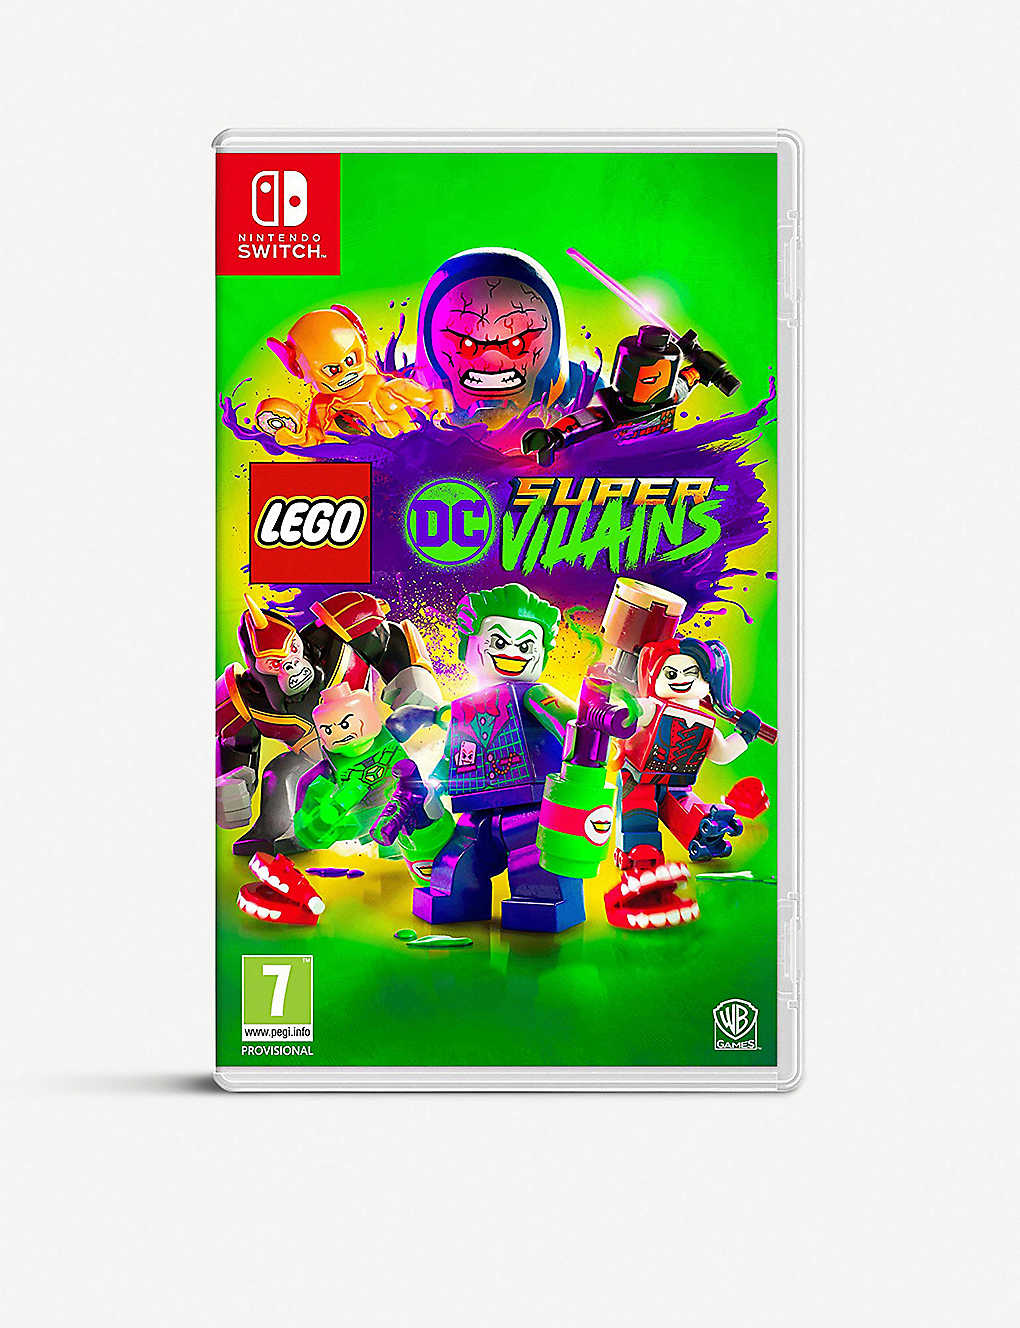 NINTENDO - LEGO DC Super Villains Nintendo Switch game